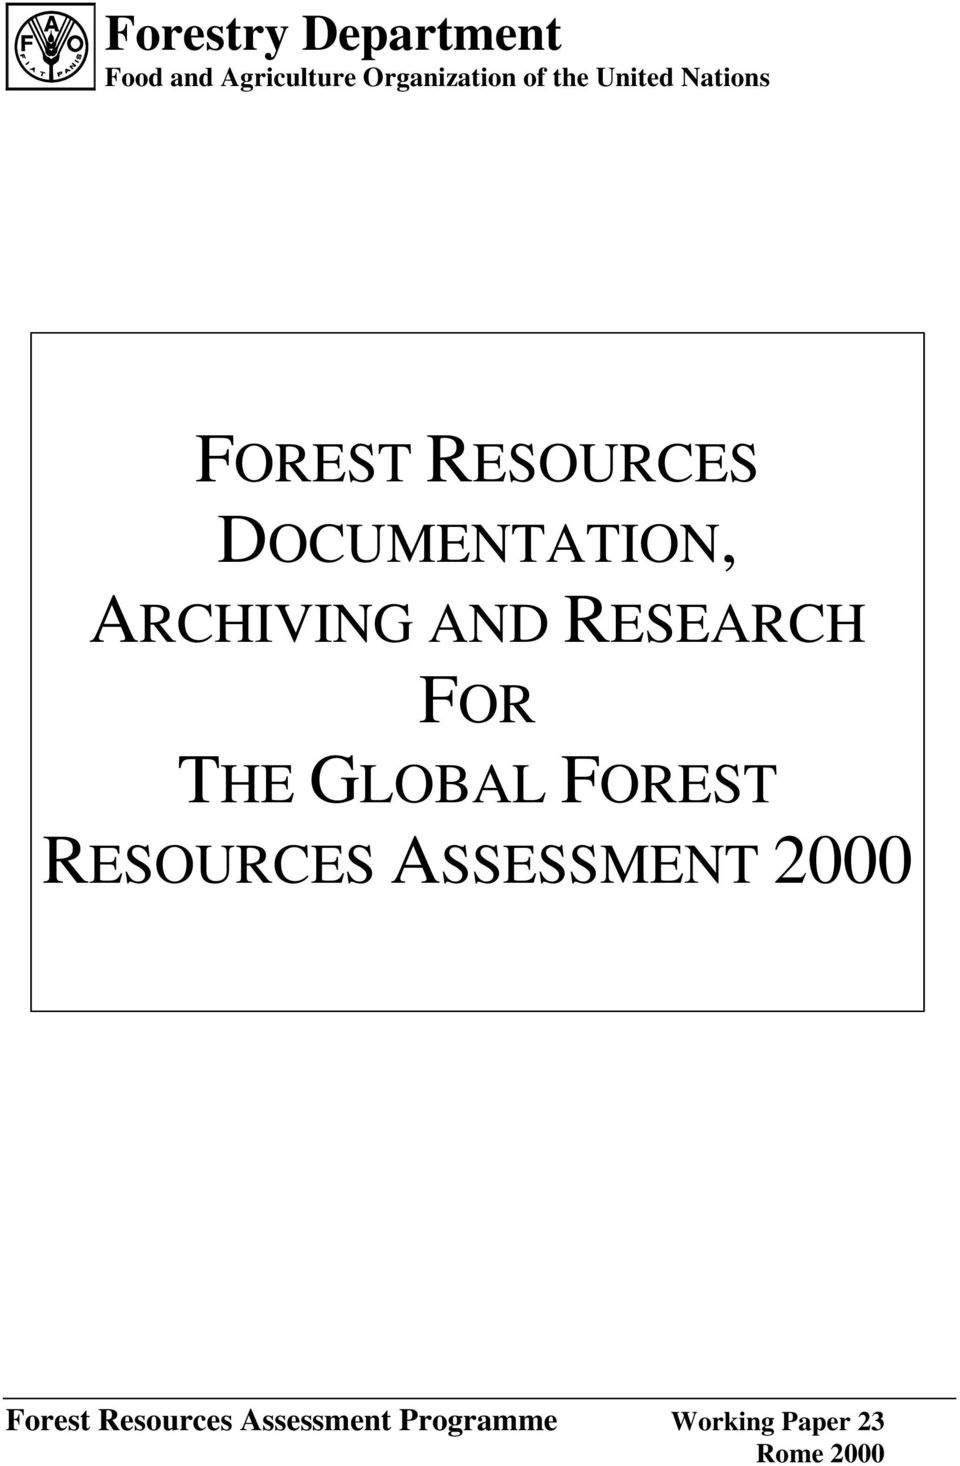 RESEARCH FOR THE GLOBAL FOREST RESOURCES ASSESSMENT 2000